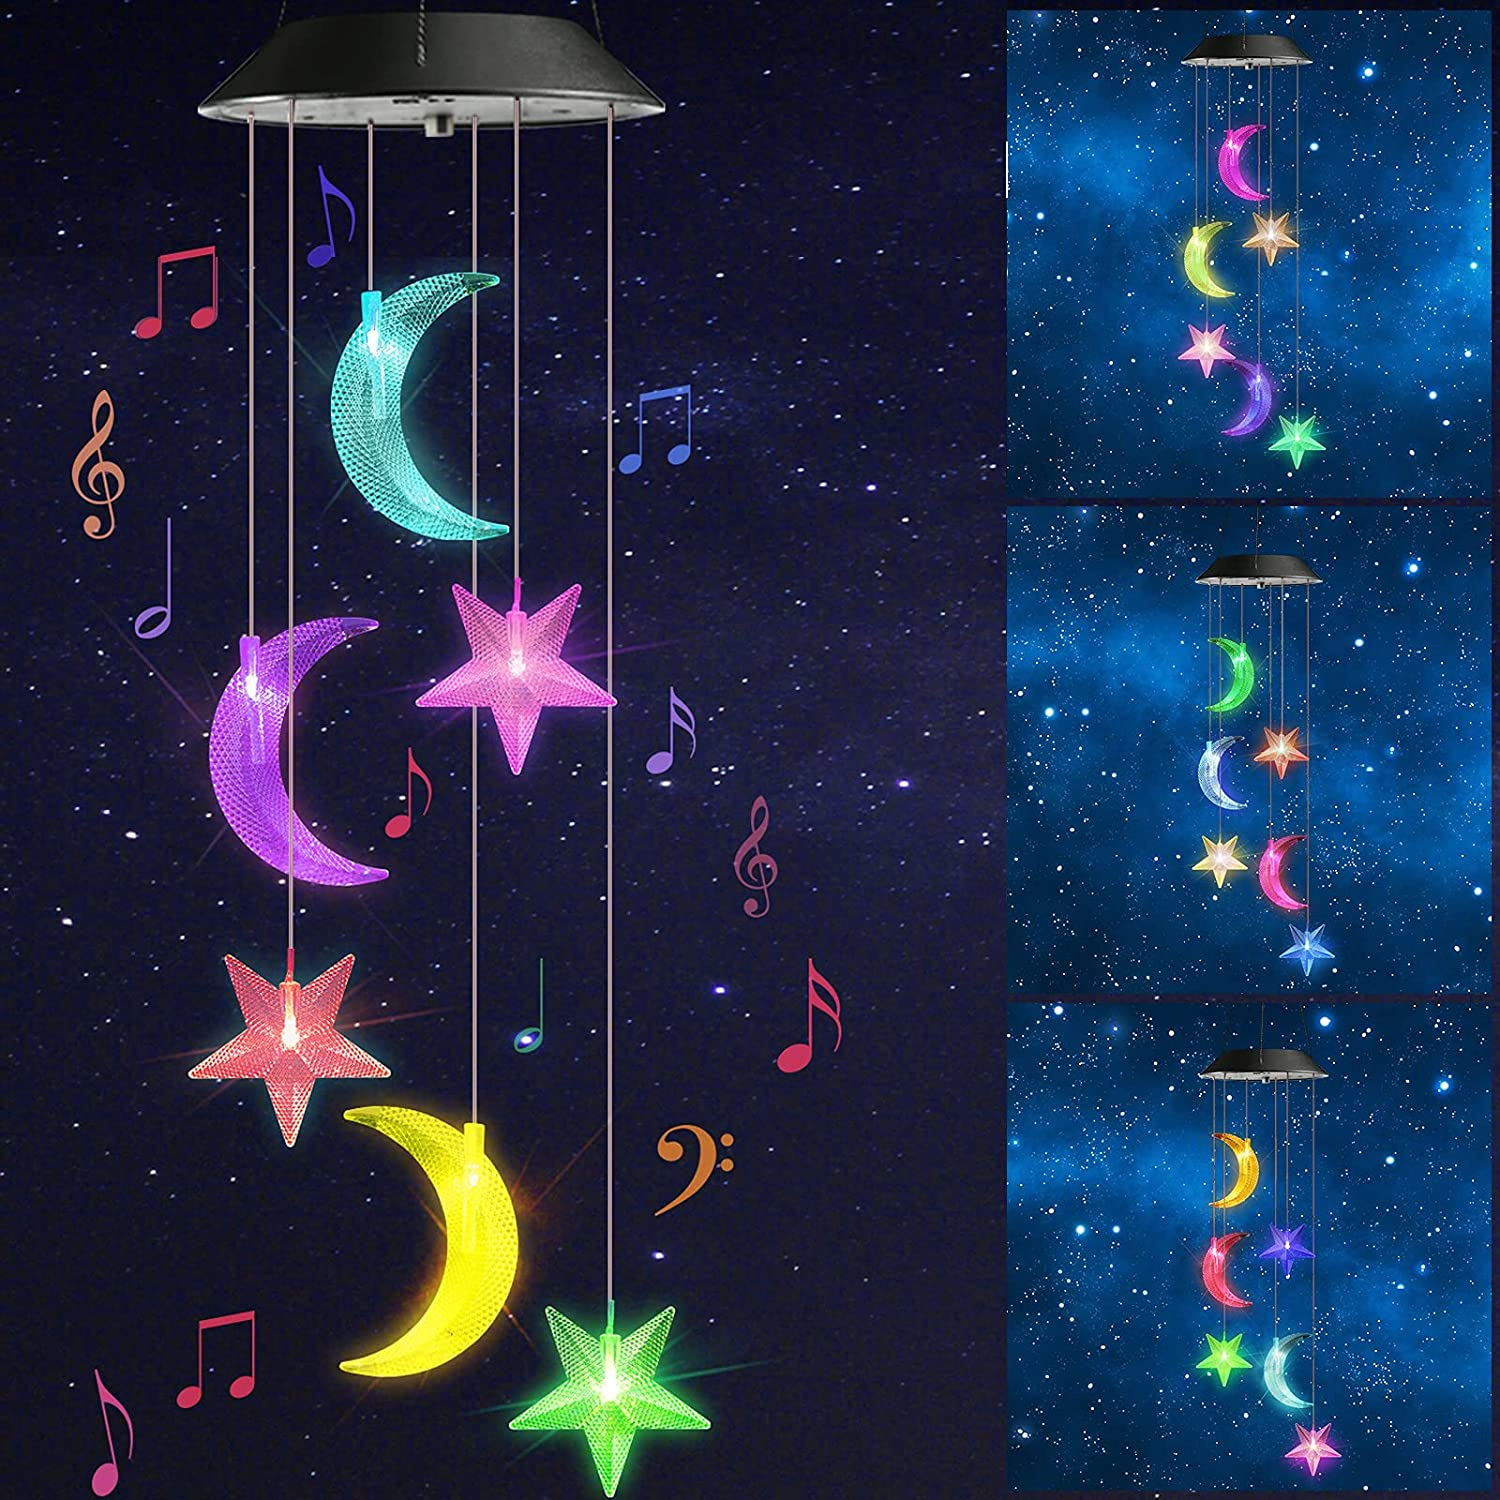 Toodour Solar Wind Chimes, Color Changing Solar Moon and Star Wind Chimes, LED Decorative Mobile, Waterproof Outdoor String Lights for Garden, Patio, Party, Yard, Window